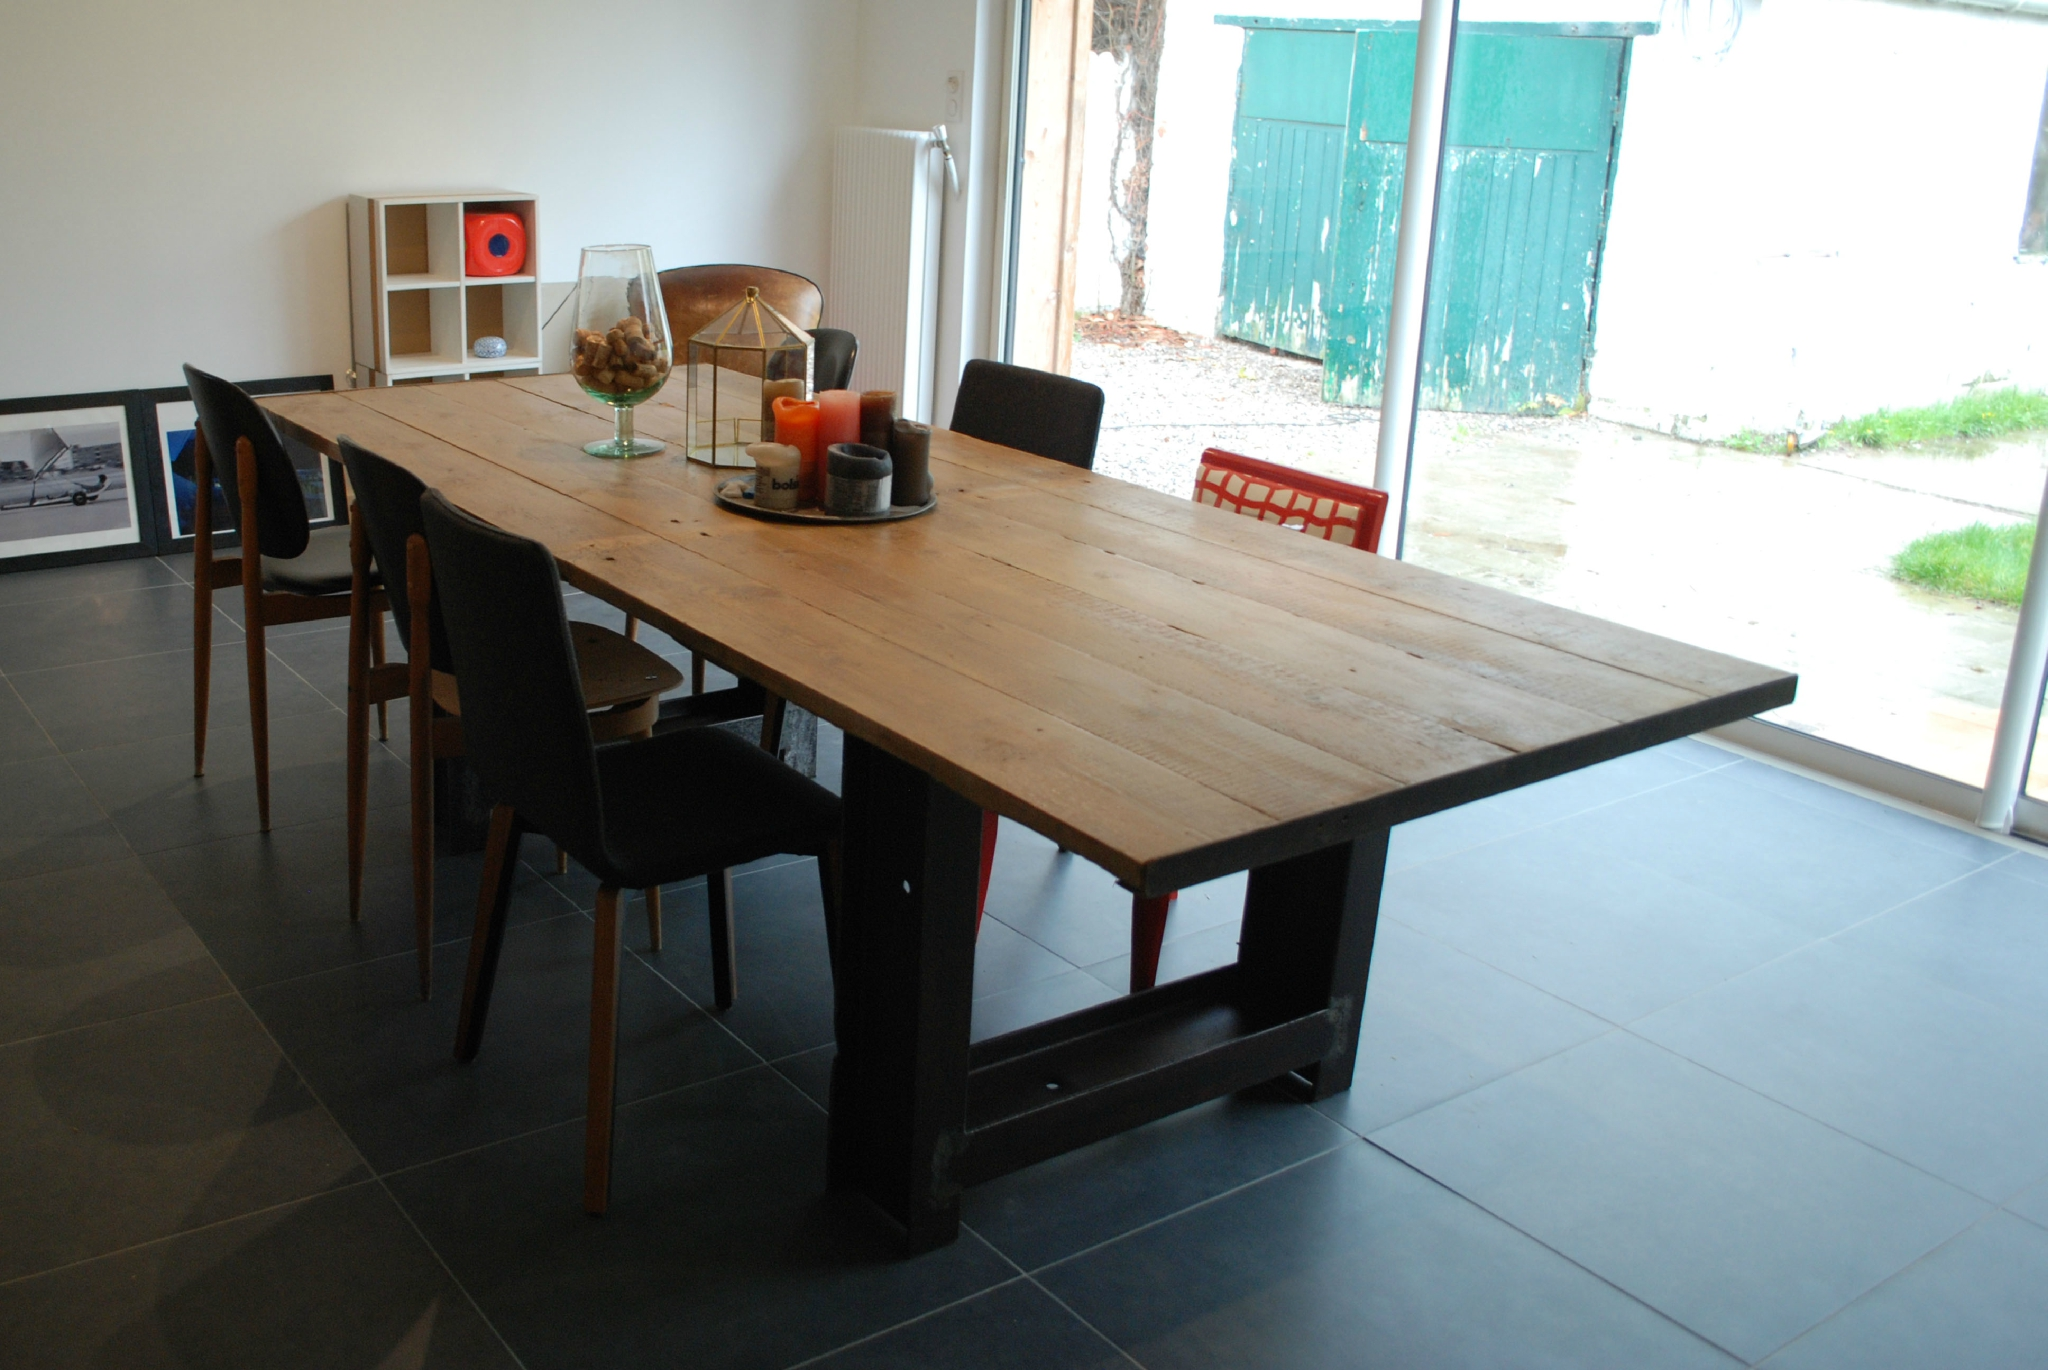 La table enfin les bricoleuzes for Plan pour table de jardin